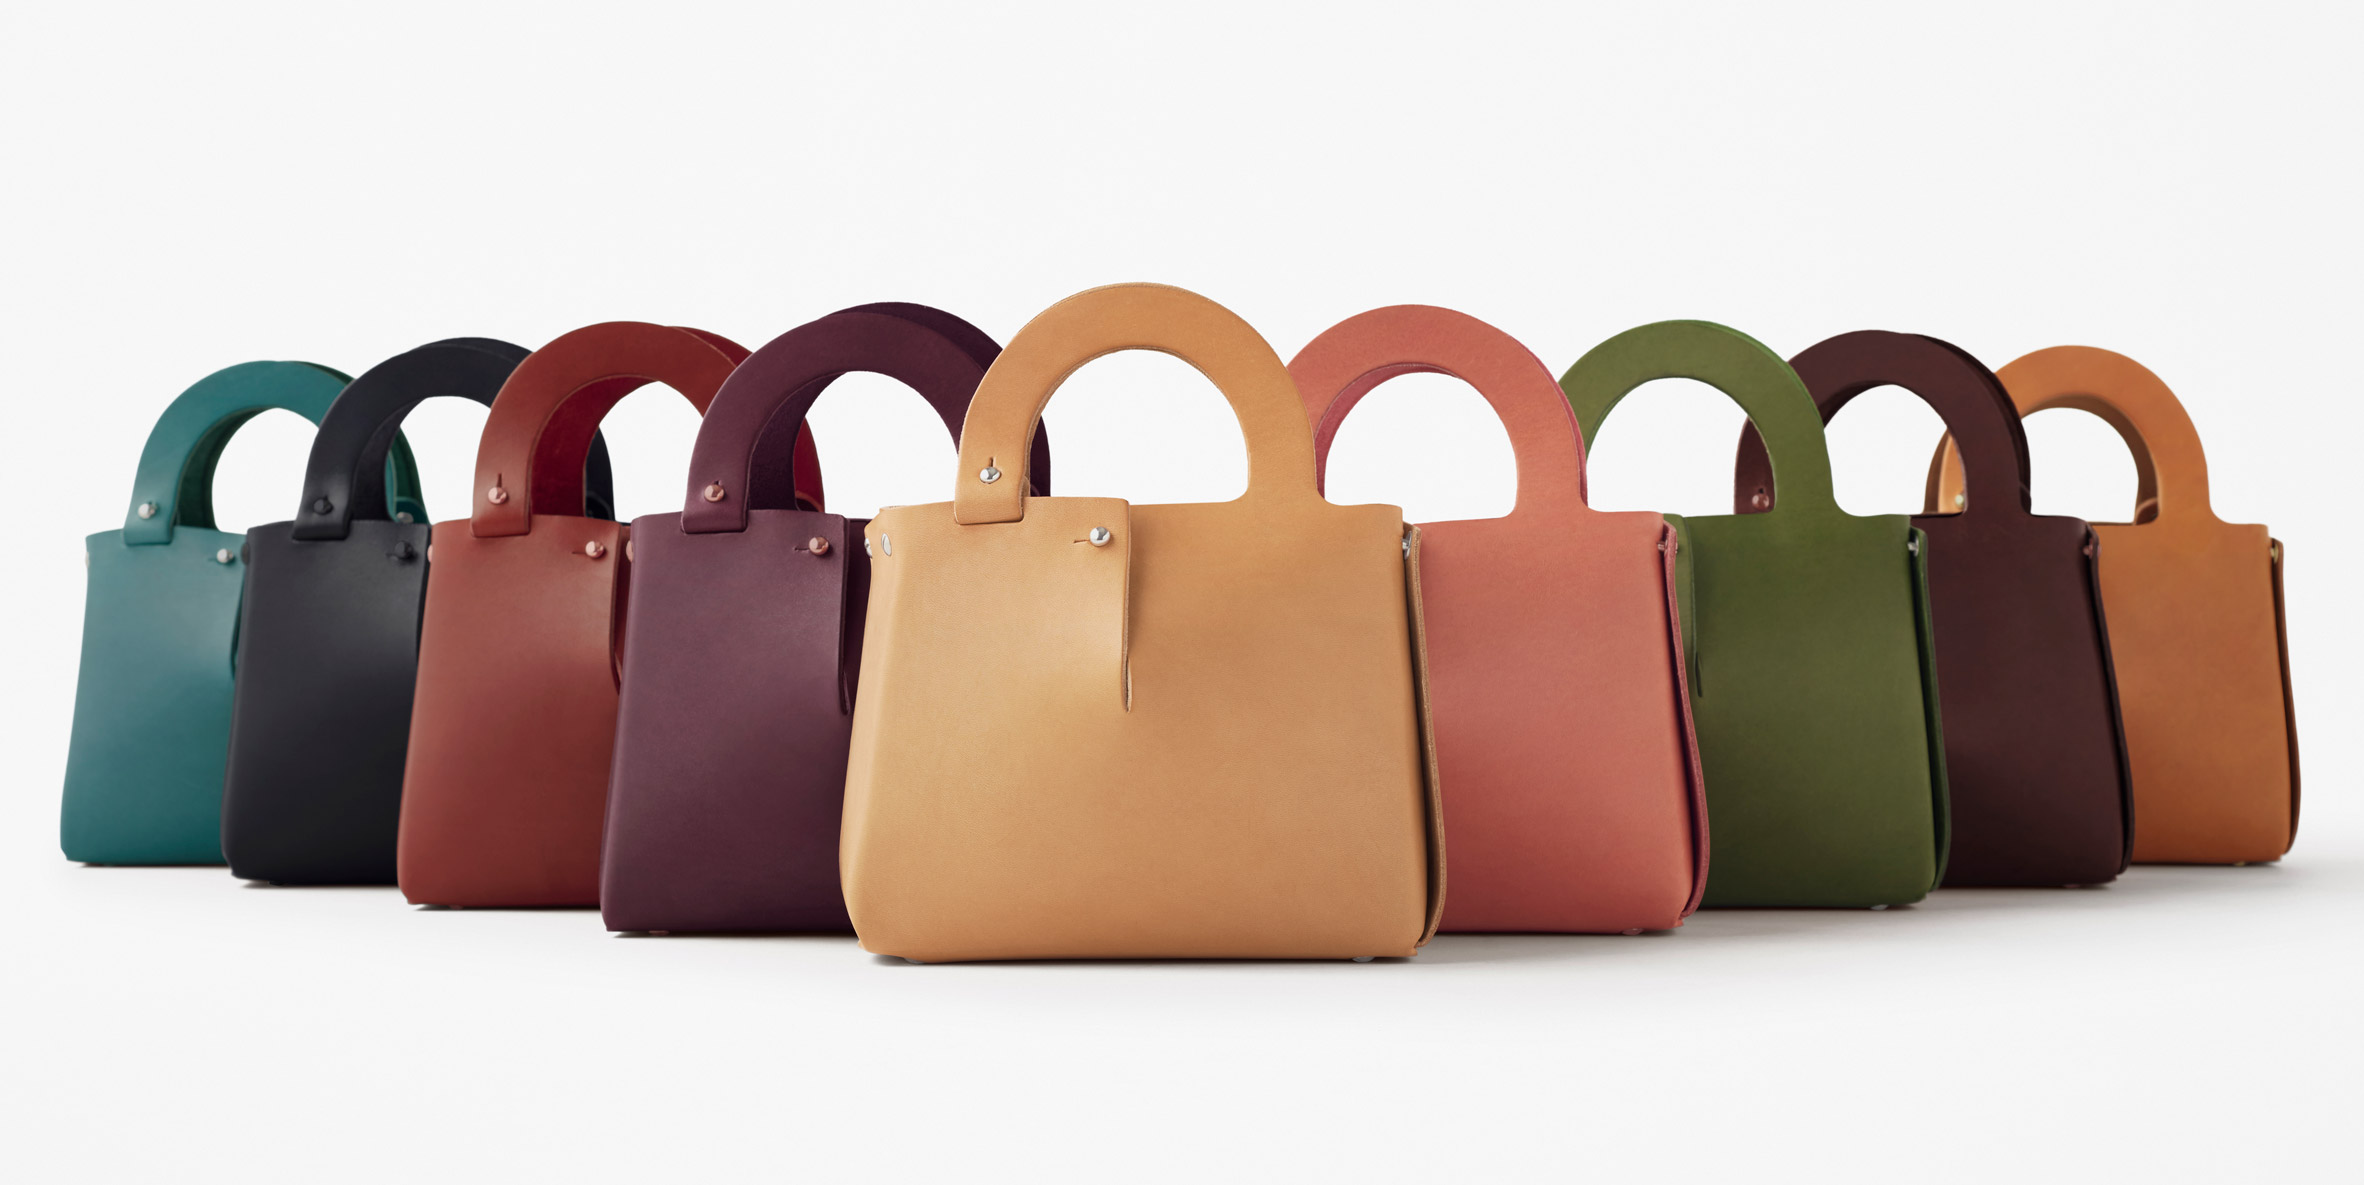 Nendo Designs Mai Bag From Single Sheet